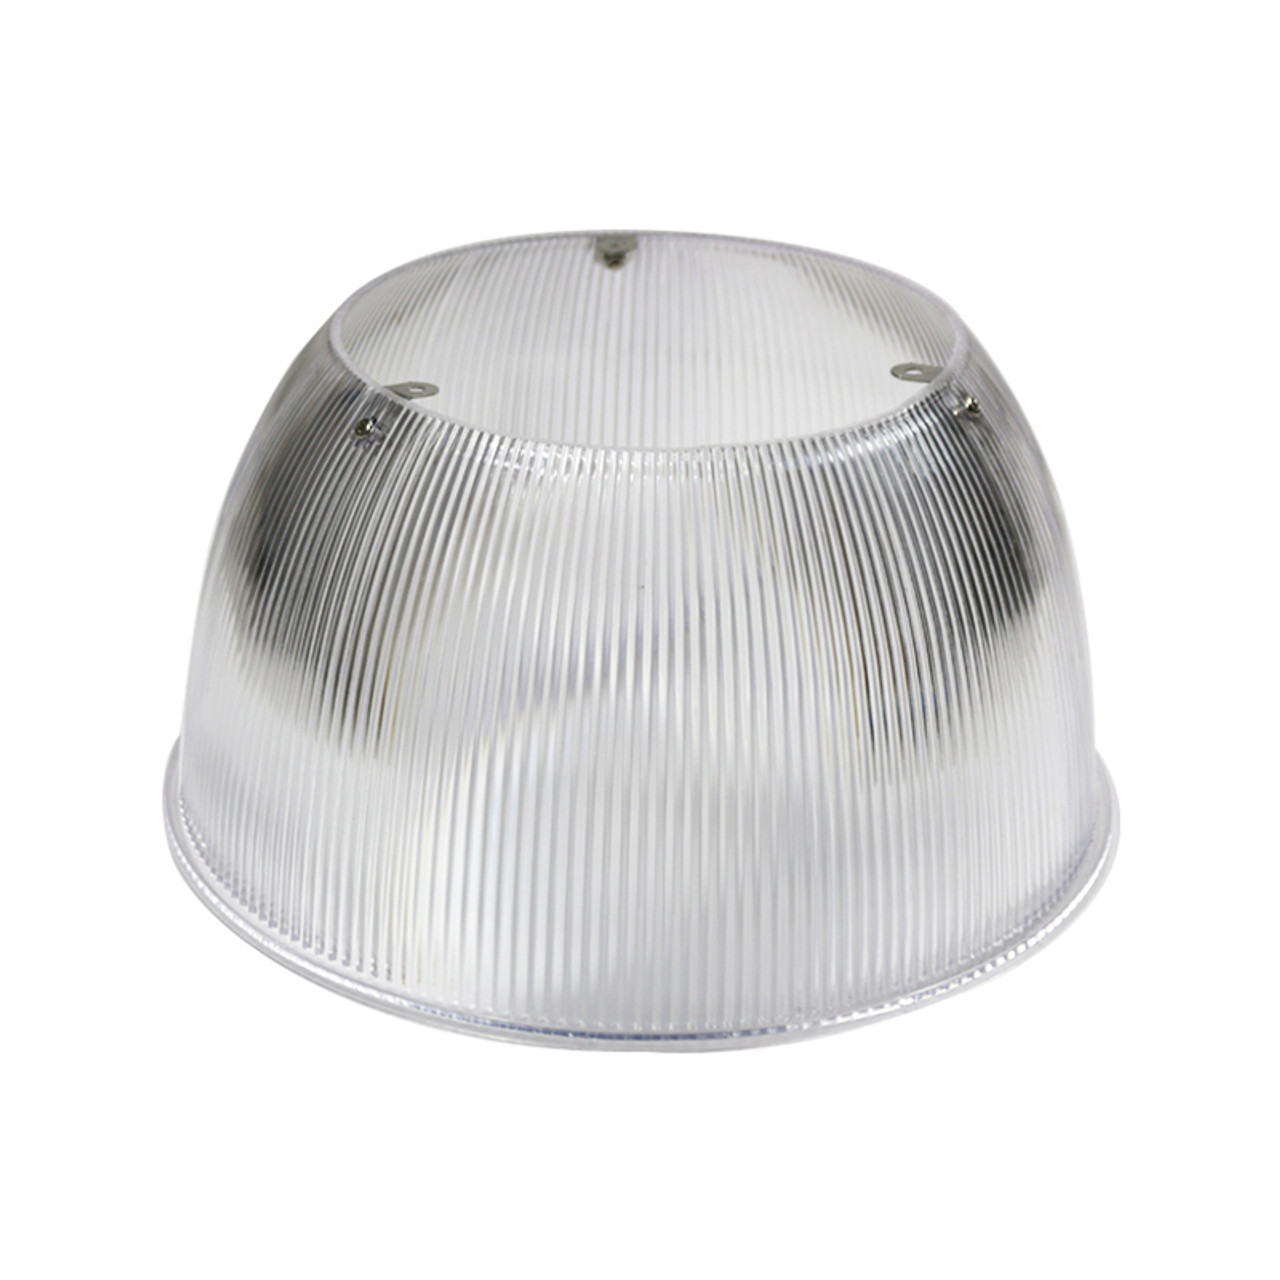 UFO LED High bay 60° V Series Polycarbonate Reflector available